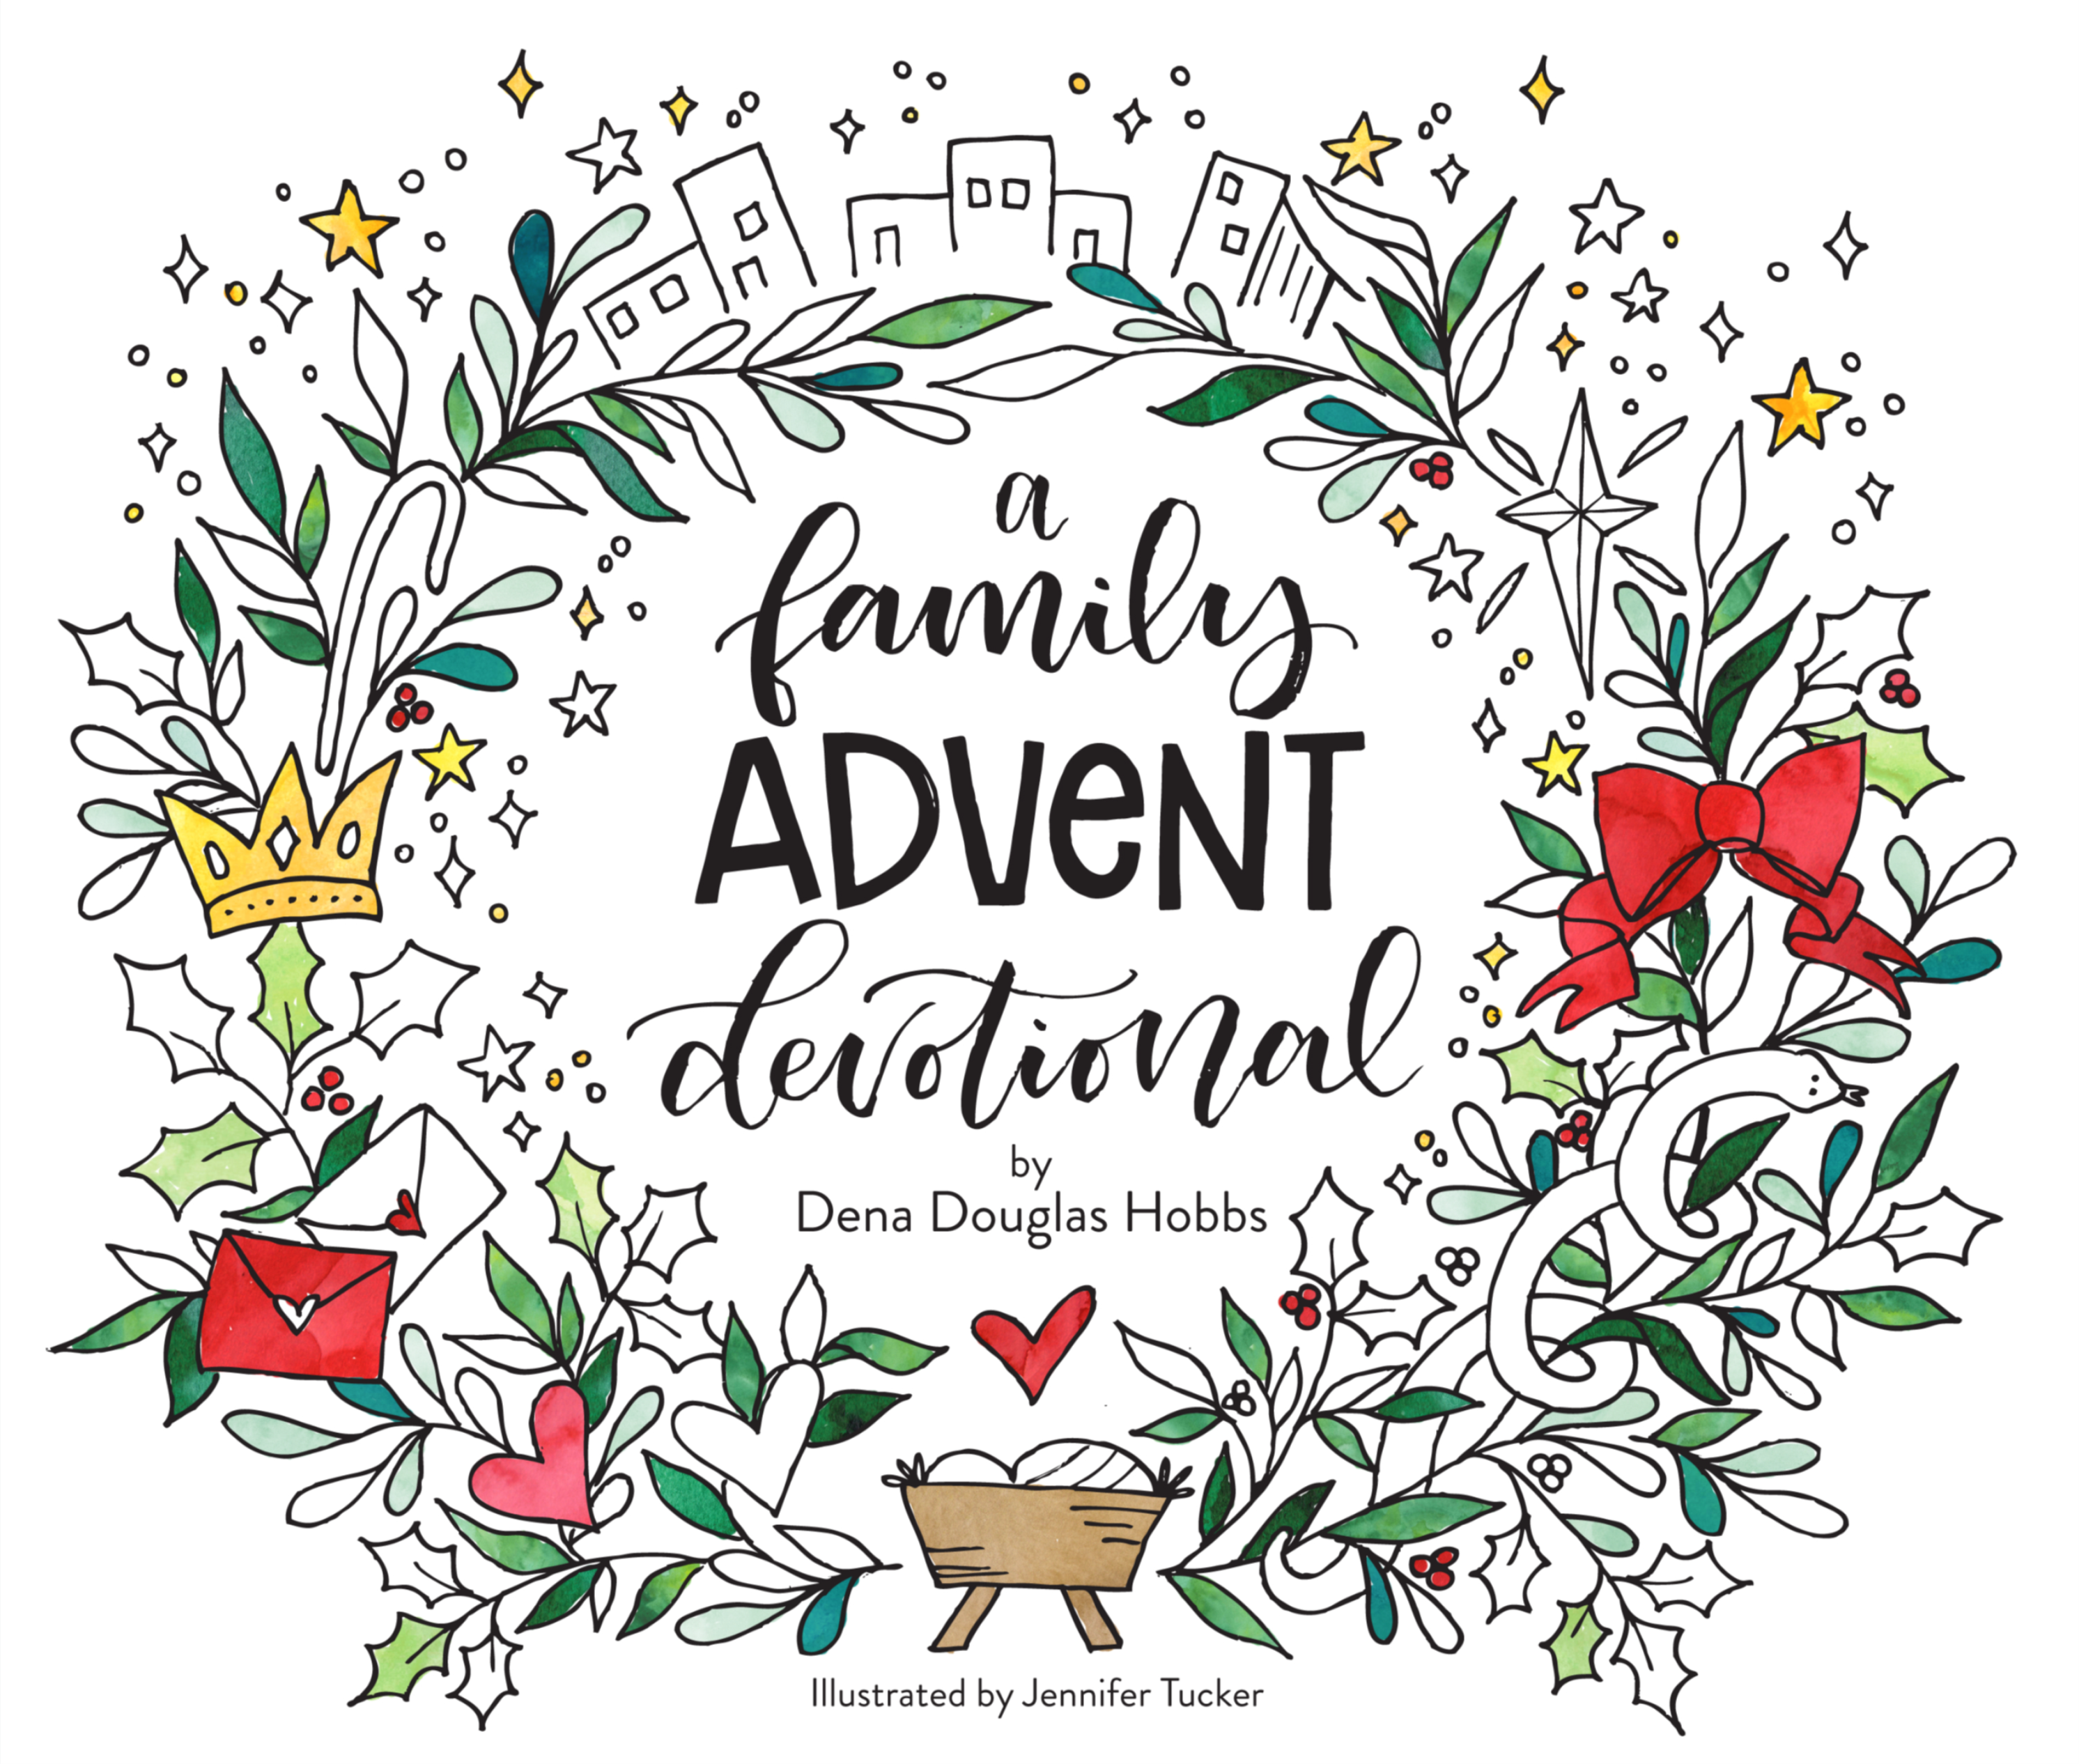 Devotional for the whole family